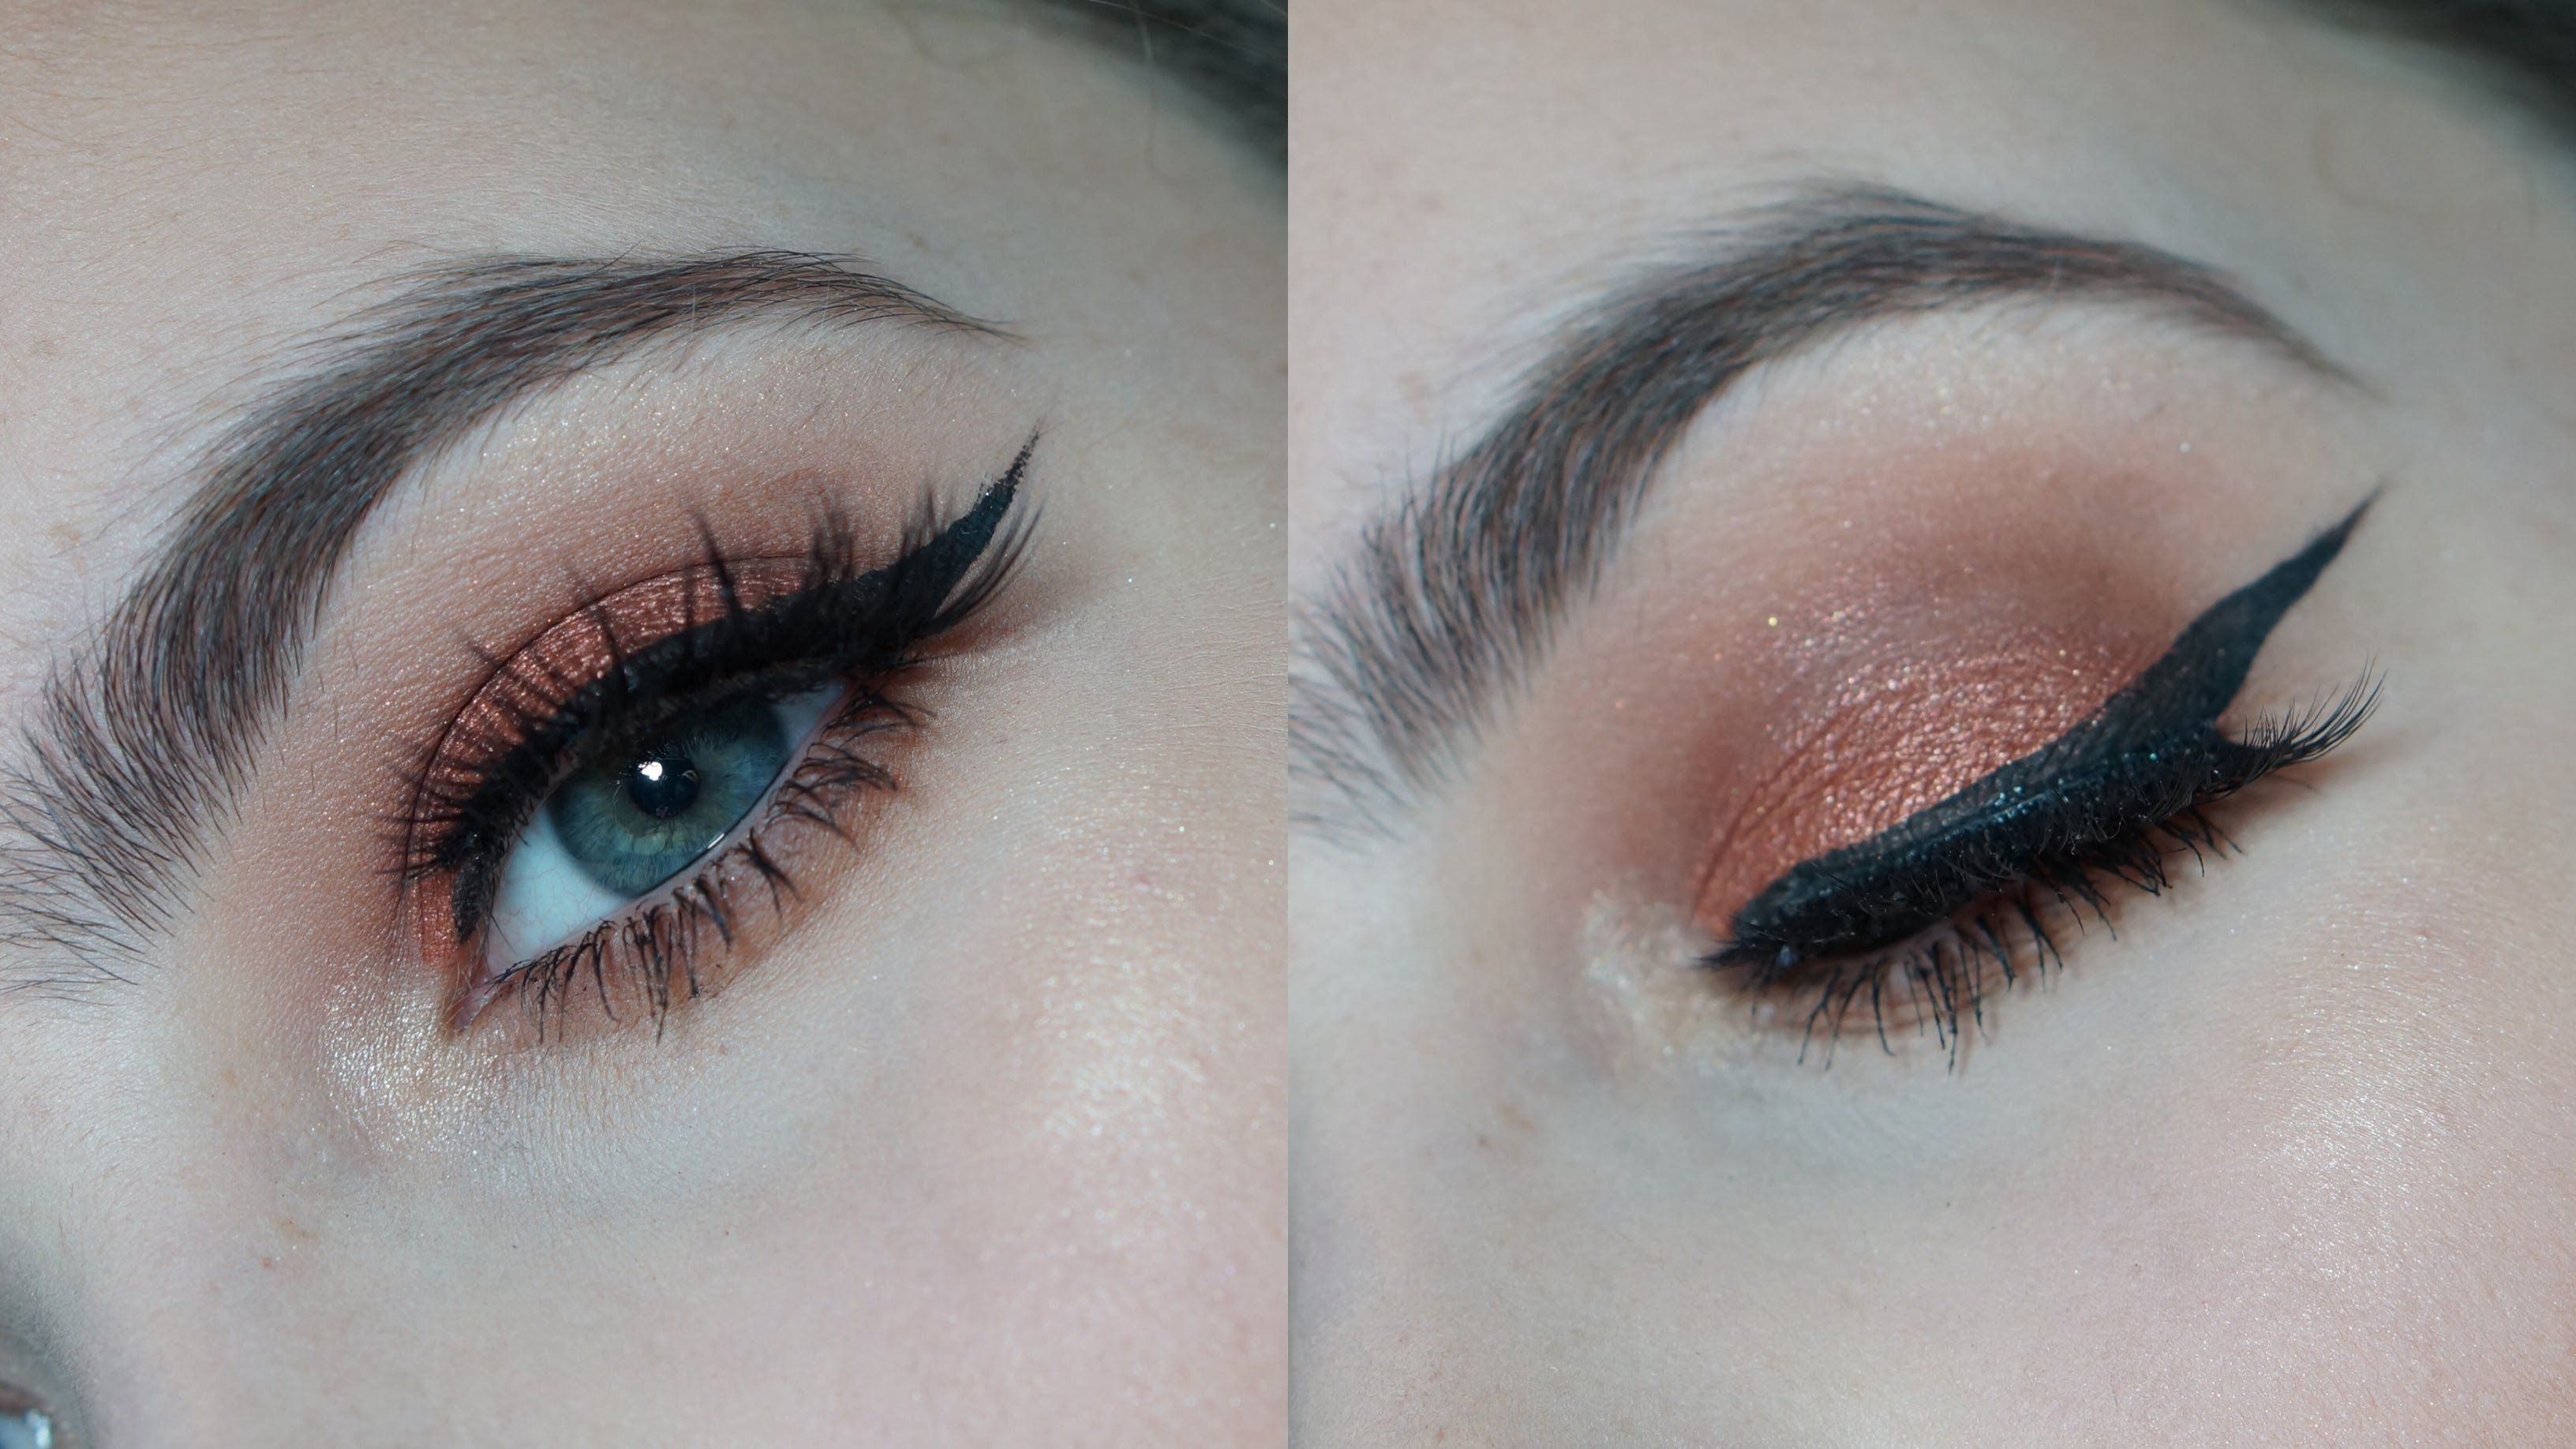 Awesome copper eye makeup tutorial ft morphe brushes 35o palette awesome copper eye makeup tutorial ft morphe brushes 35o palette baditri Image collections